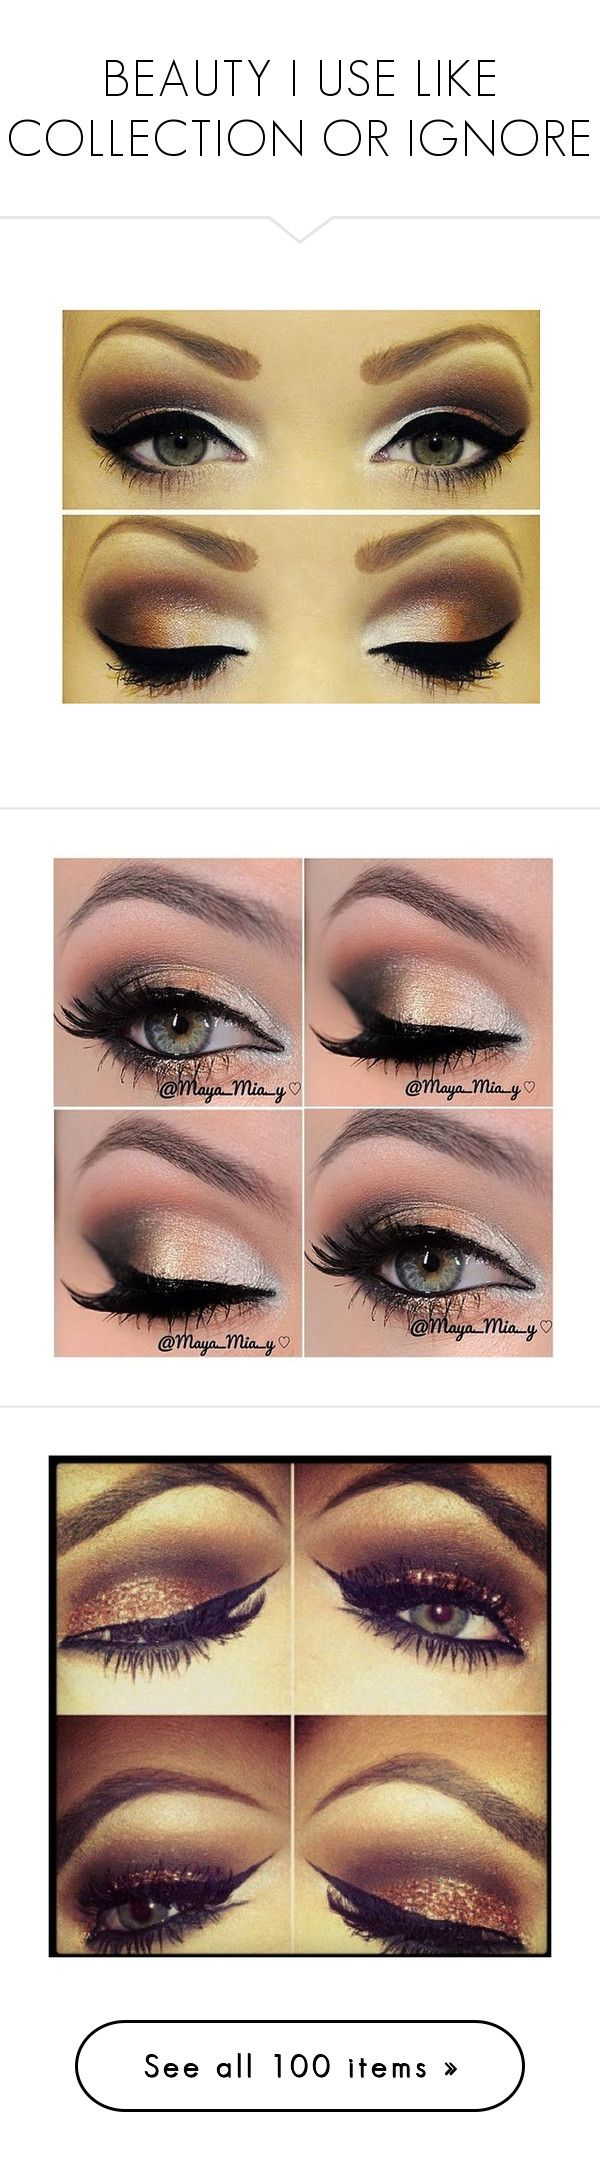 """""""BEAUTY I USE LIKE COLLECTION OR IGNORE"""" by myra-moore ❤ liked on Polyvore featuring beauty products, makeup, eye makeup, eyes, beauty, maquiagem, eyeshadow, beleza, eyeliner and hypoallergenic eyeliner"""